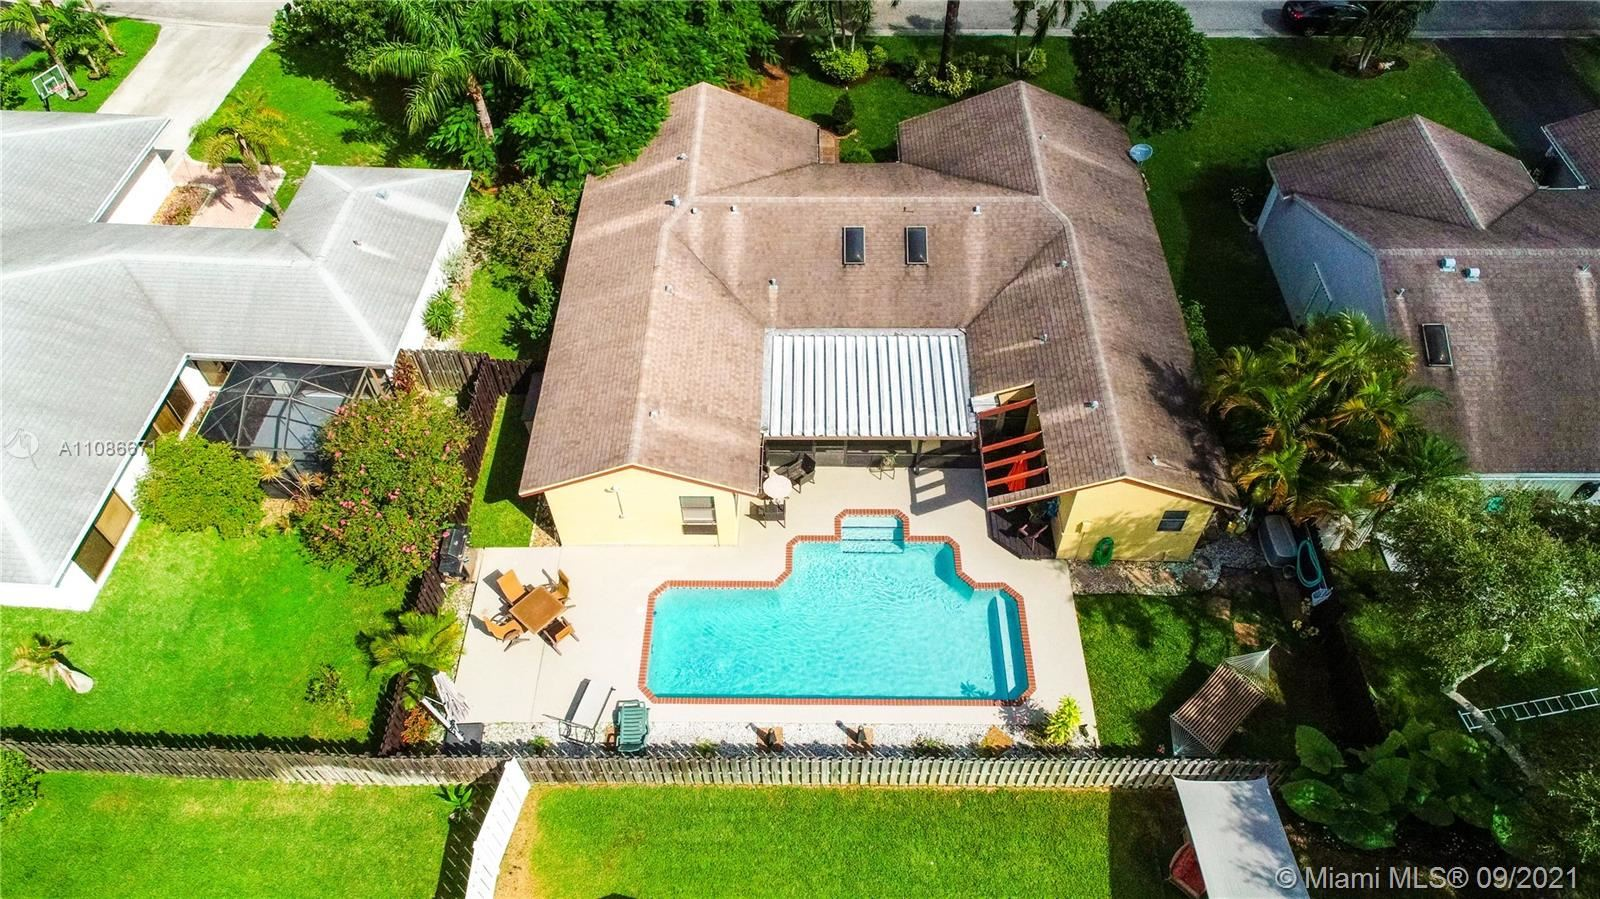 11282 NW 44th St, Coral Springs, FL 33065 - #: A11086671